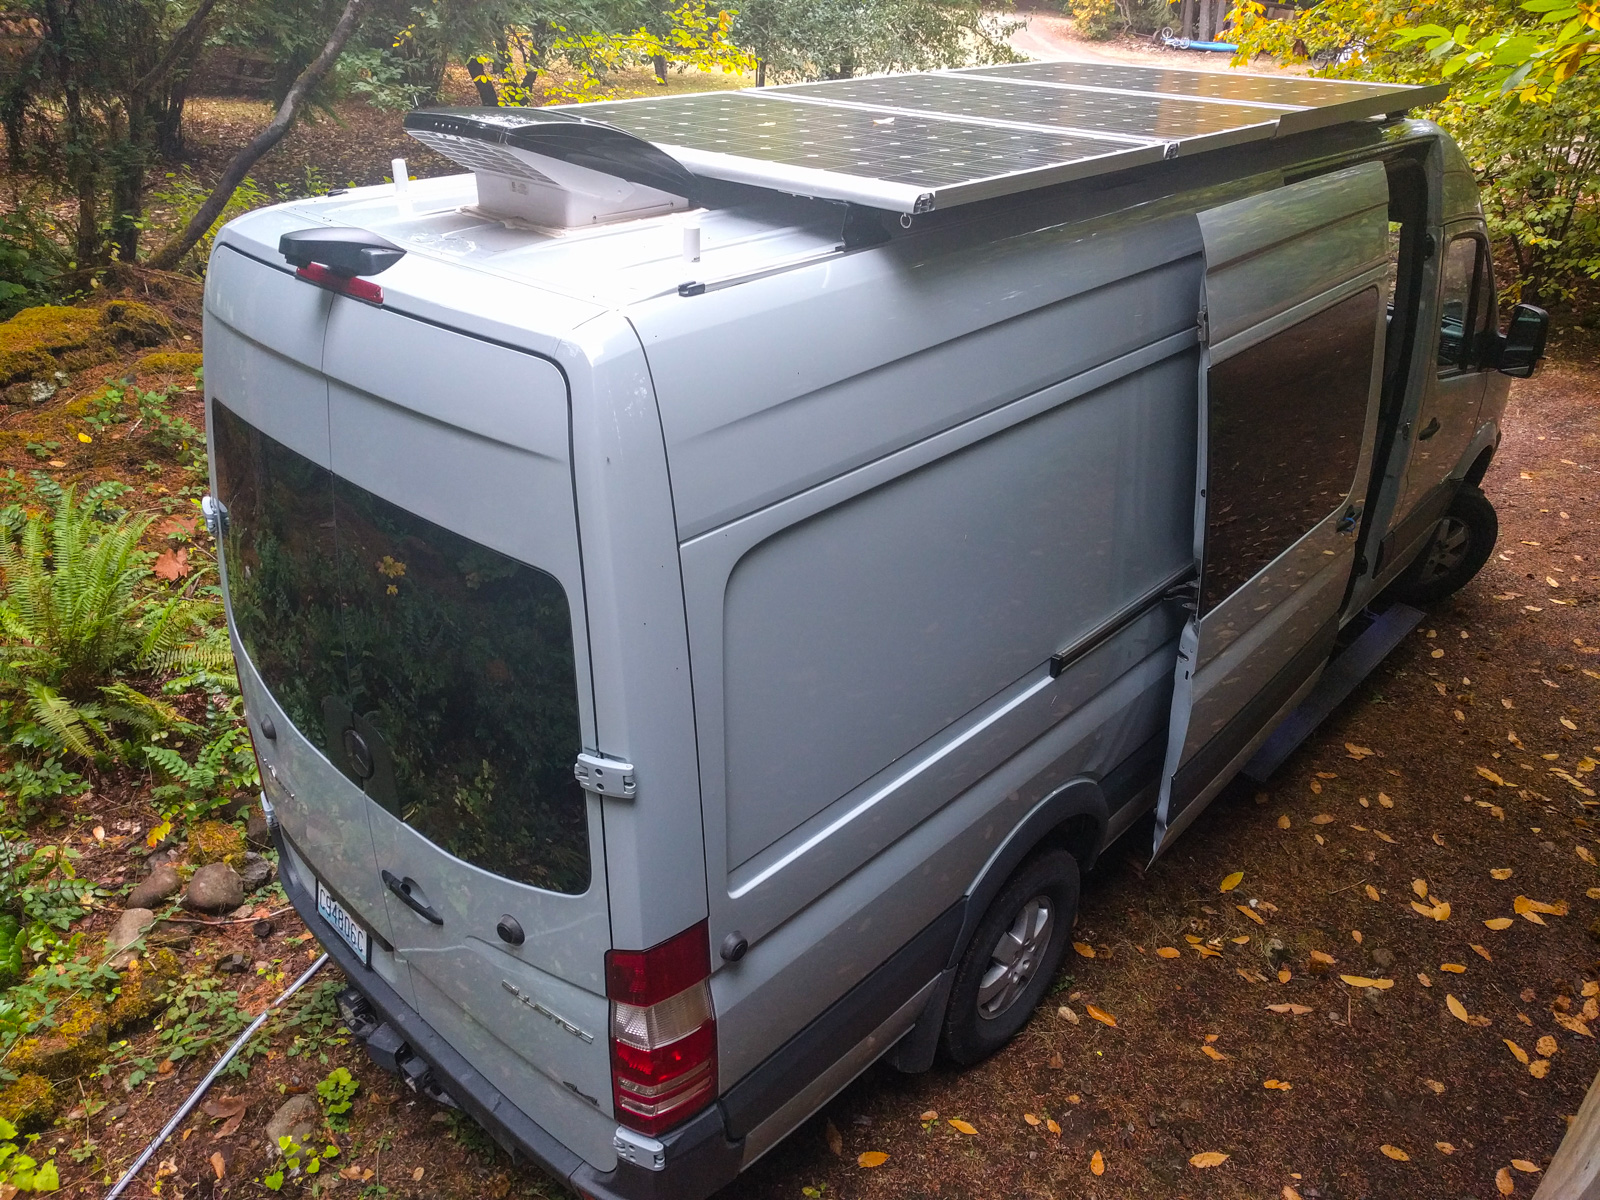 Electrical Sprinter Adventure Van Upgrading My Rv Battery Bank And 12 Volt System Solar Panels On The Roof